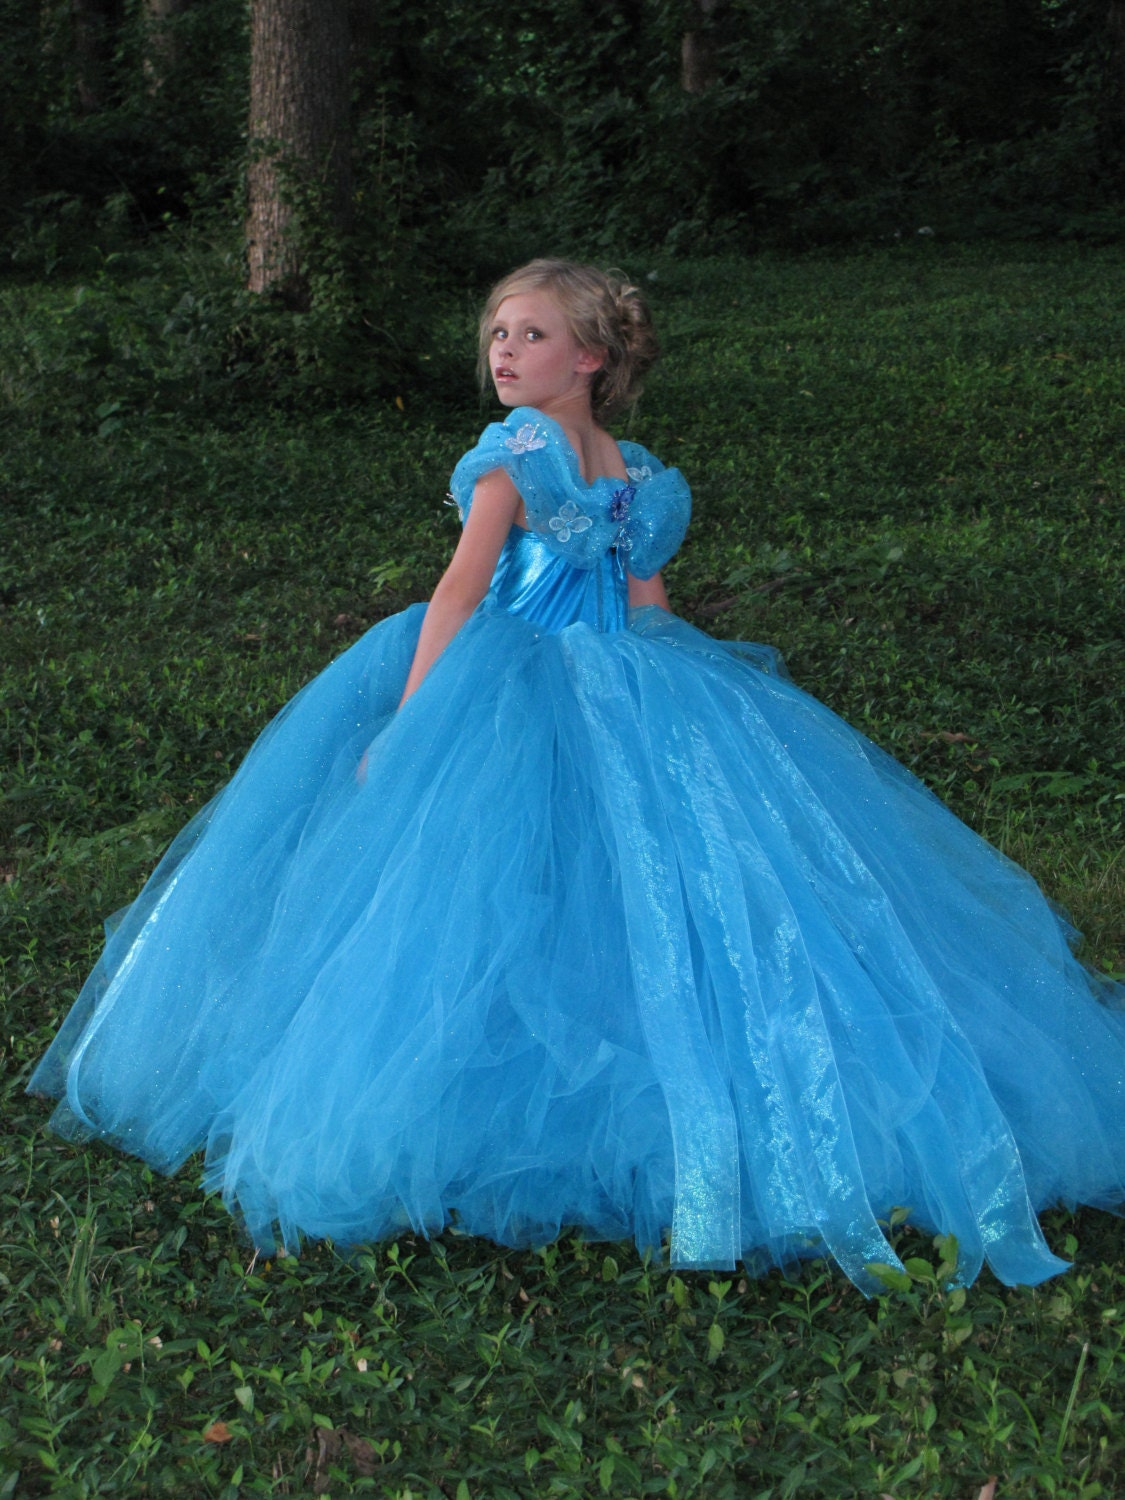 New 2015 Inspired Cinderella dress 2015 Cinderella dress